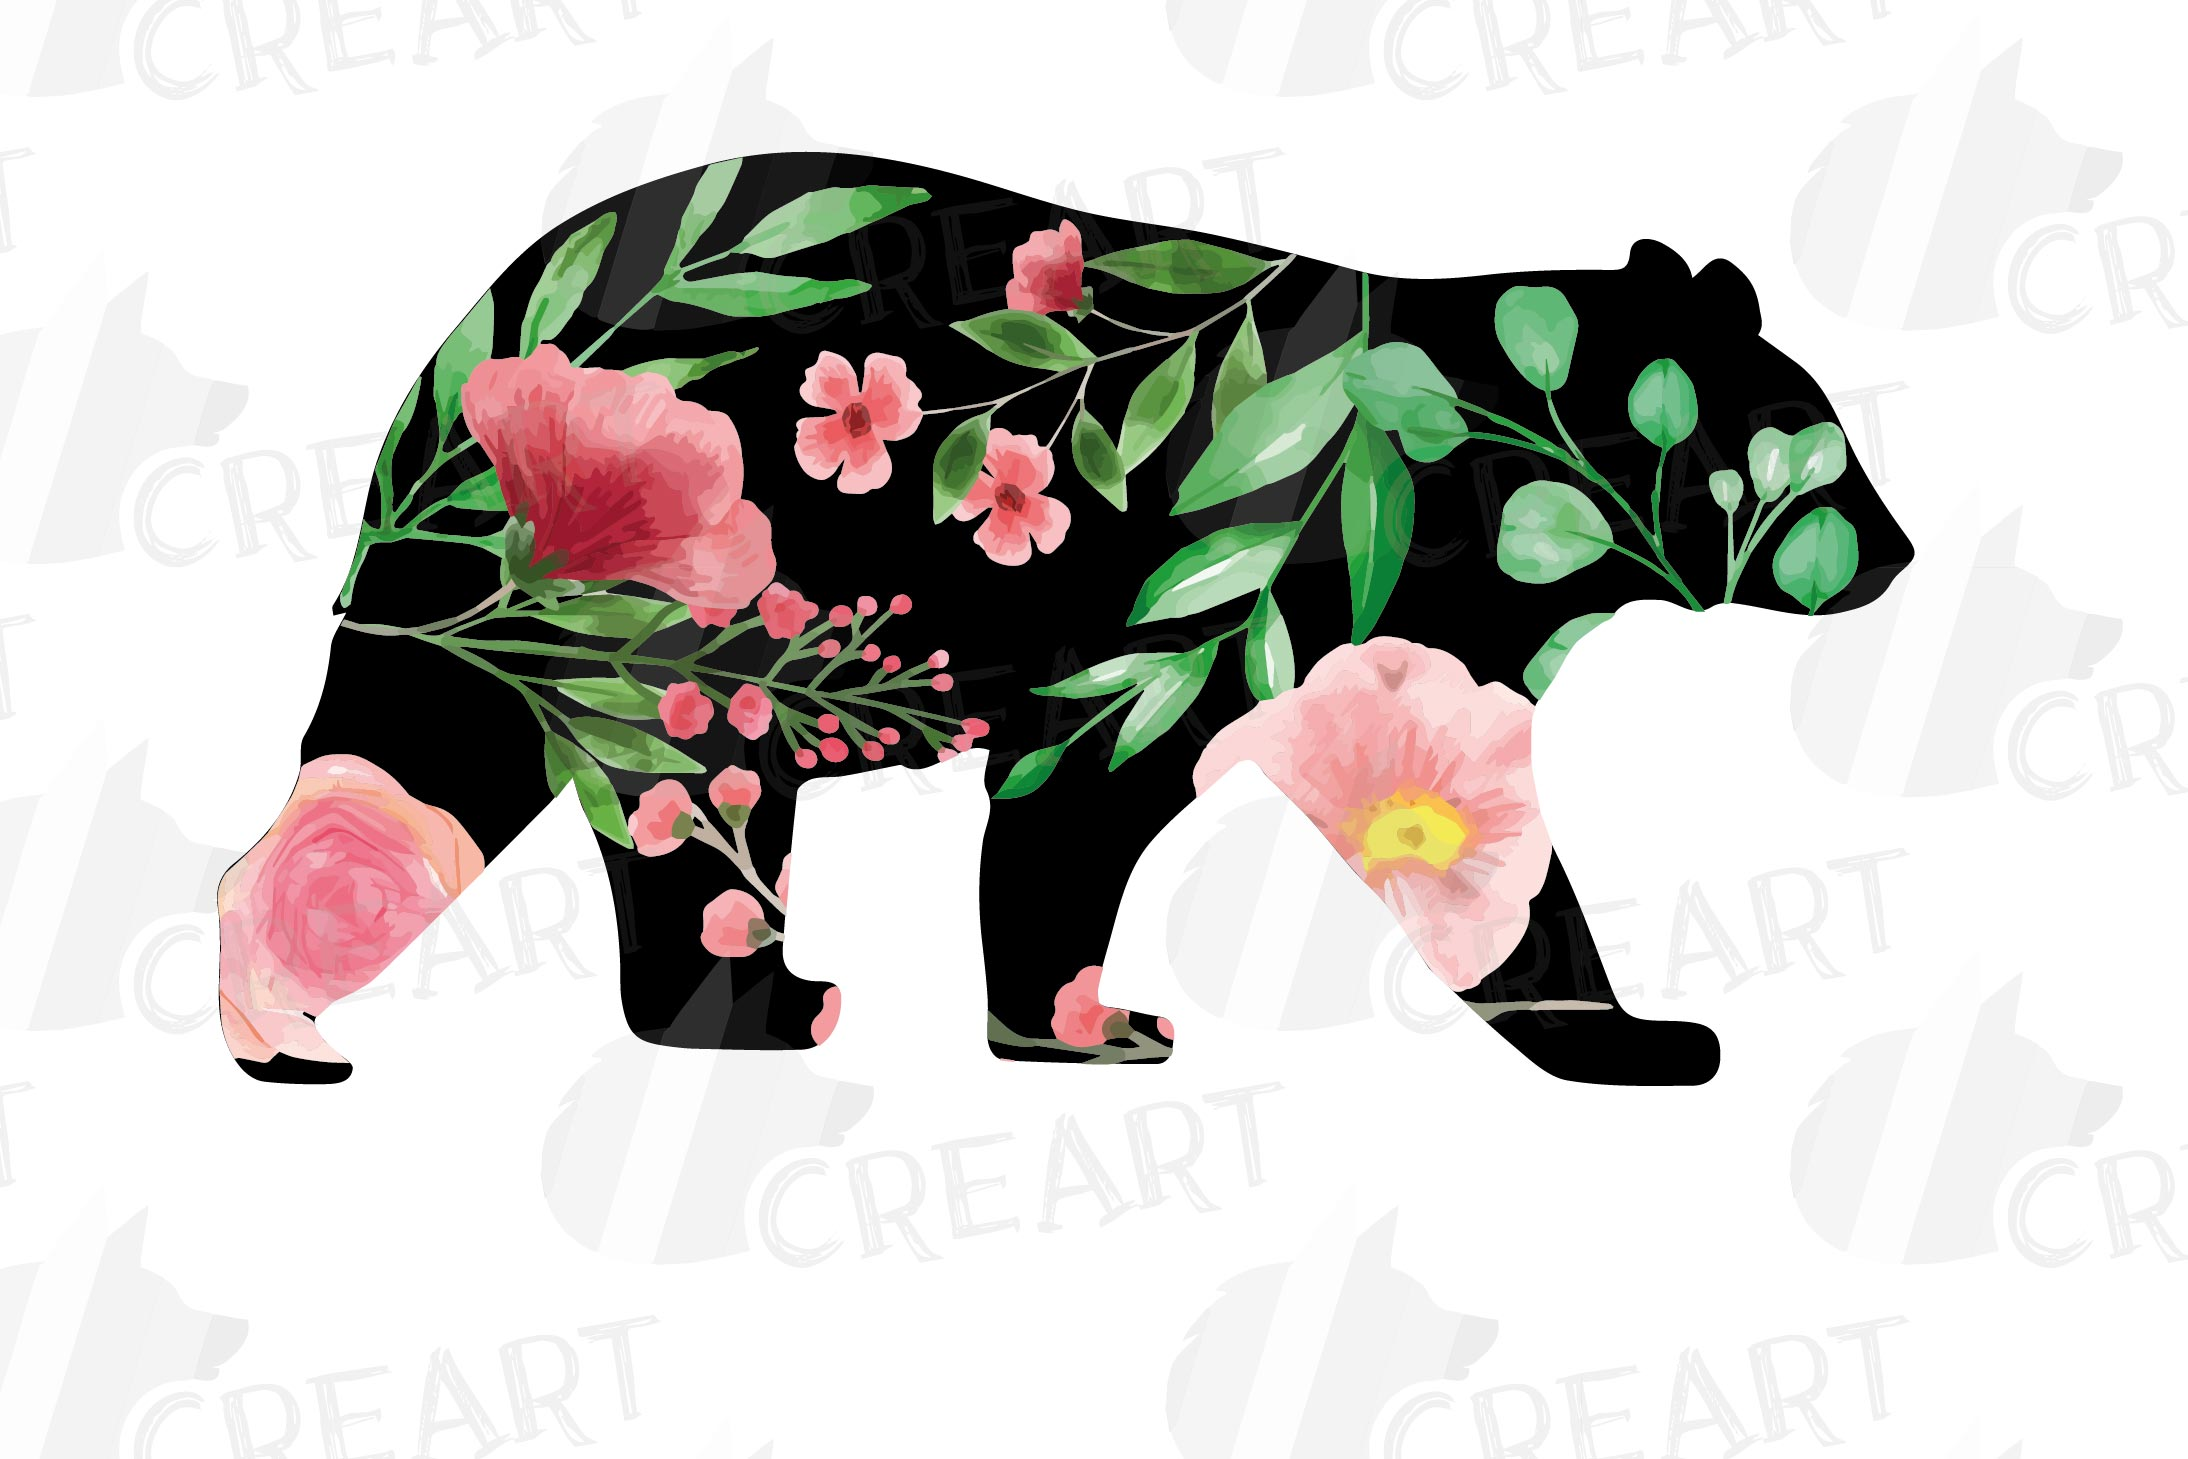 Floral bear family, sister, brother, baby, papa and mama example image 13